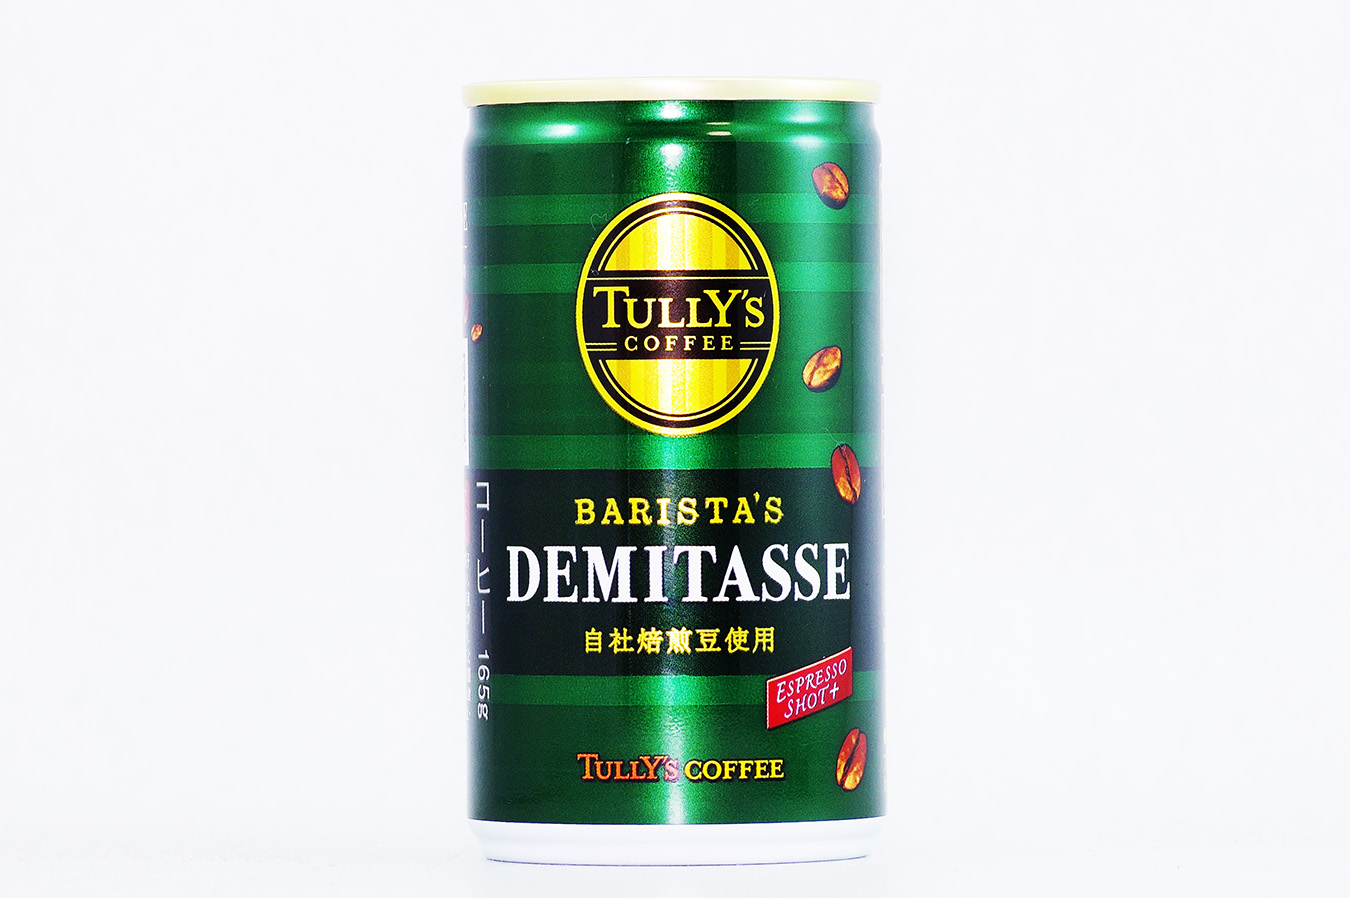 TULLY'S COFFEE BARISTA'S DEMITASSE